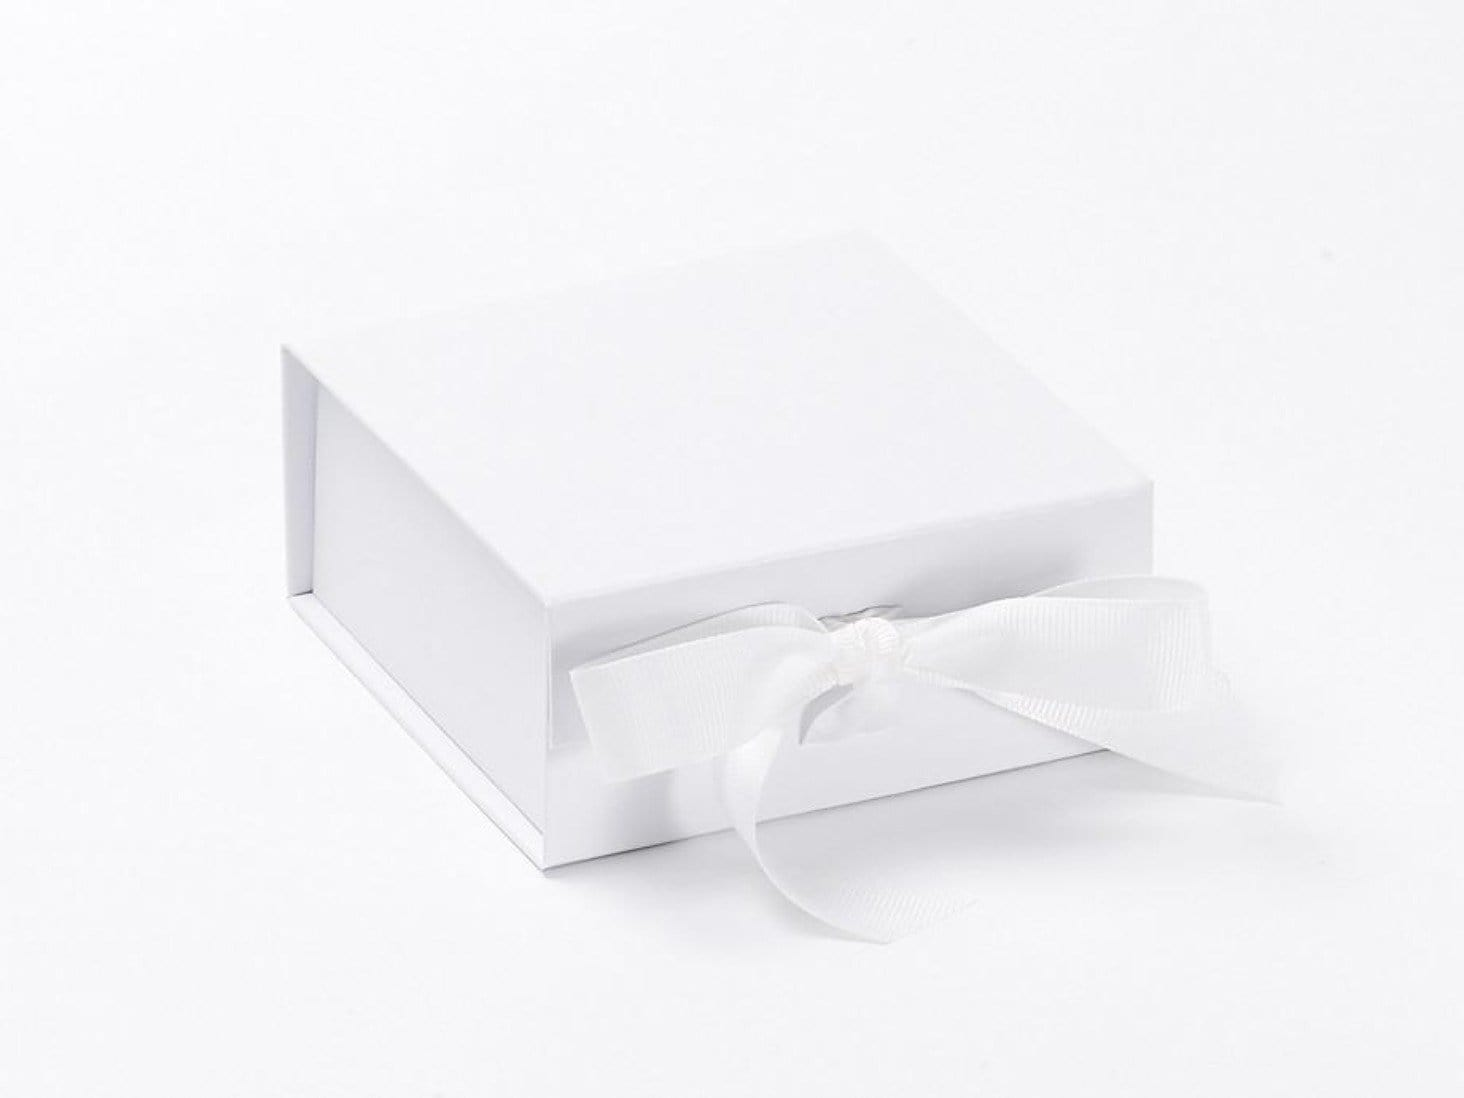 Small White Folding Gift Box with fixed ribbon ties Sample